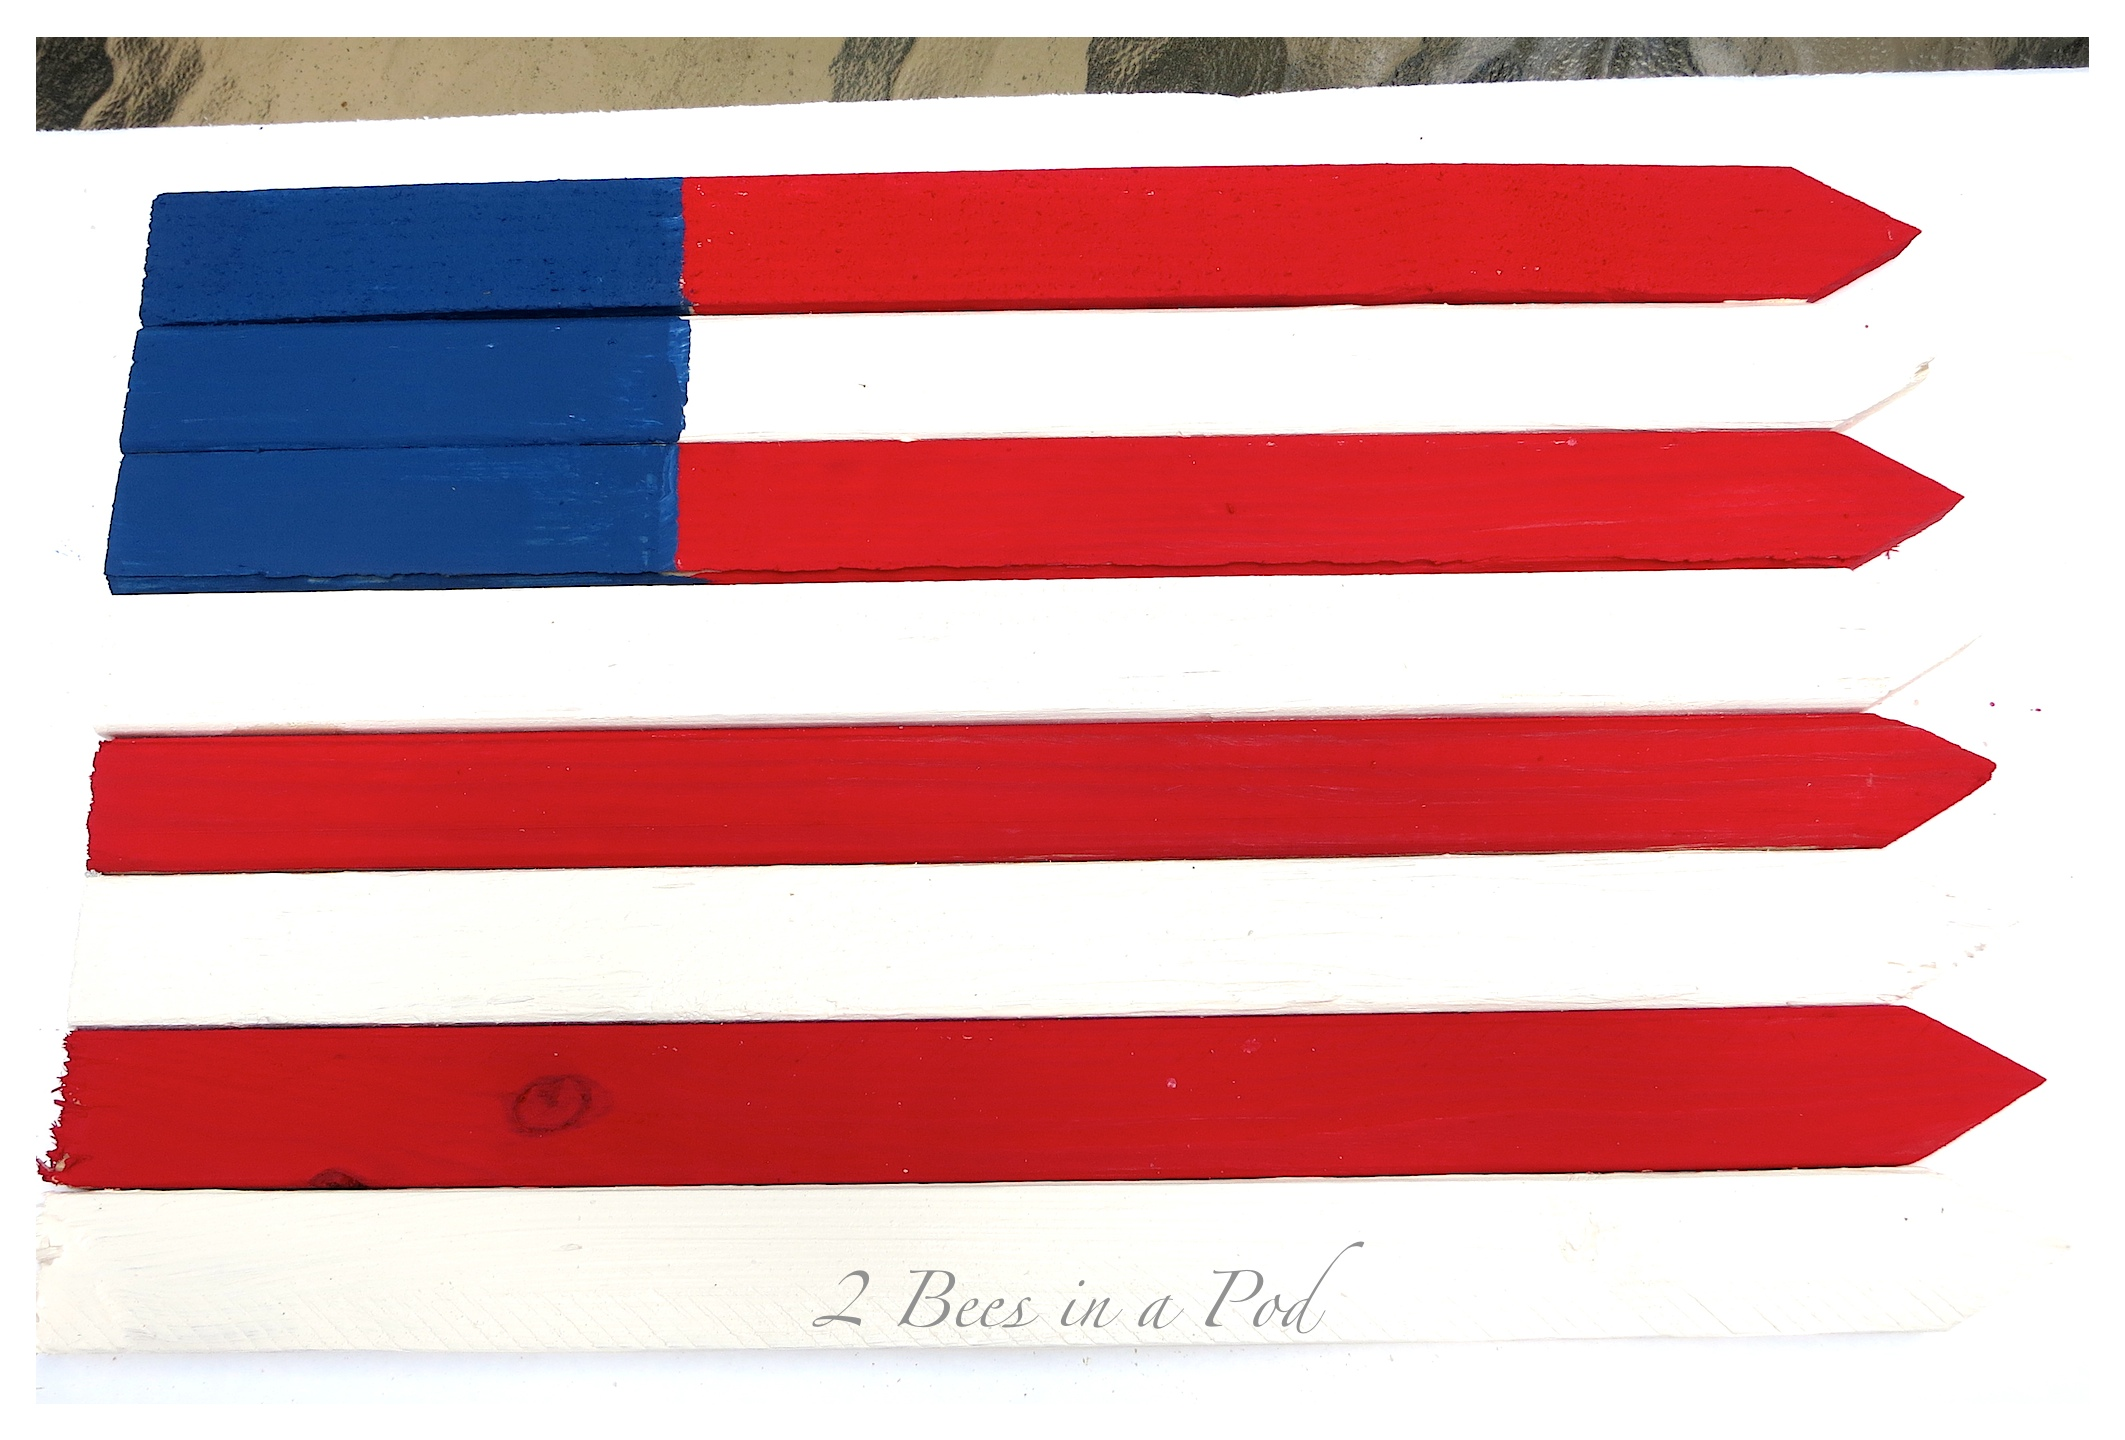 DIY tutorial - USA wooden flag made using grade stake pickets from the hardware store. Used a sander and waxes to give the flag a vintage, rustic antique finish. I'm proud to be an American :)